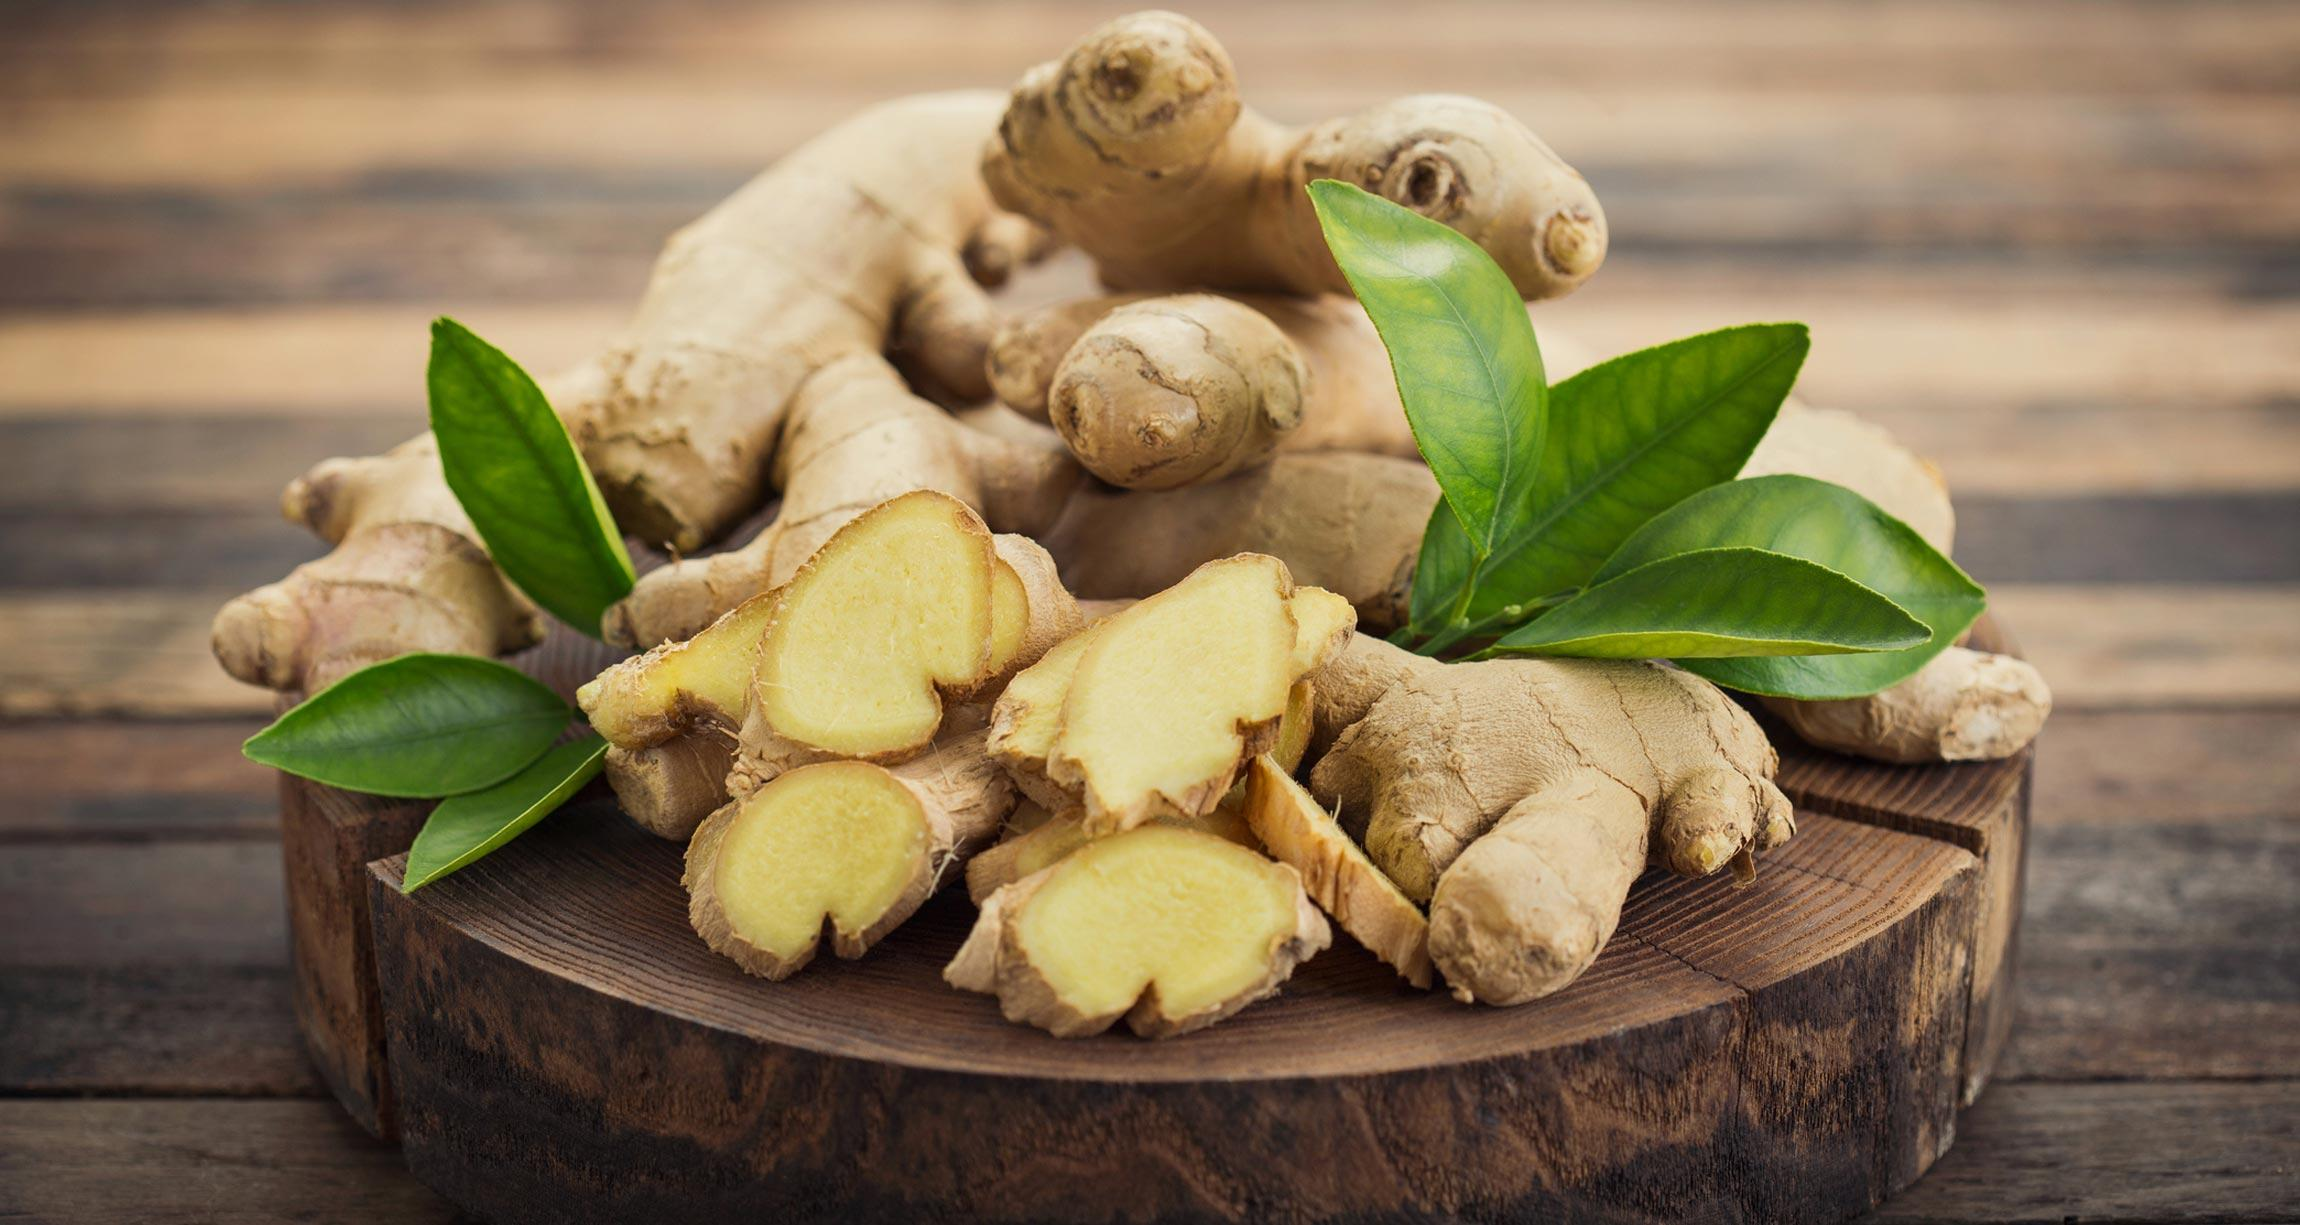 Ginger Wallpapers - Top Free Ginger Backgrounds - WallpaperAccess